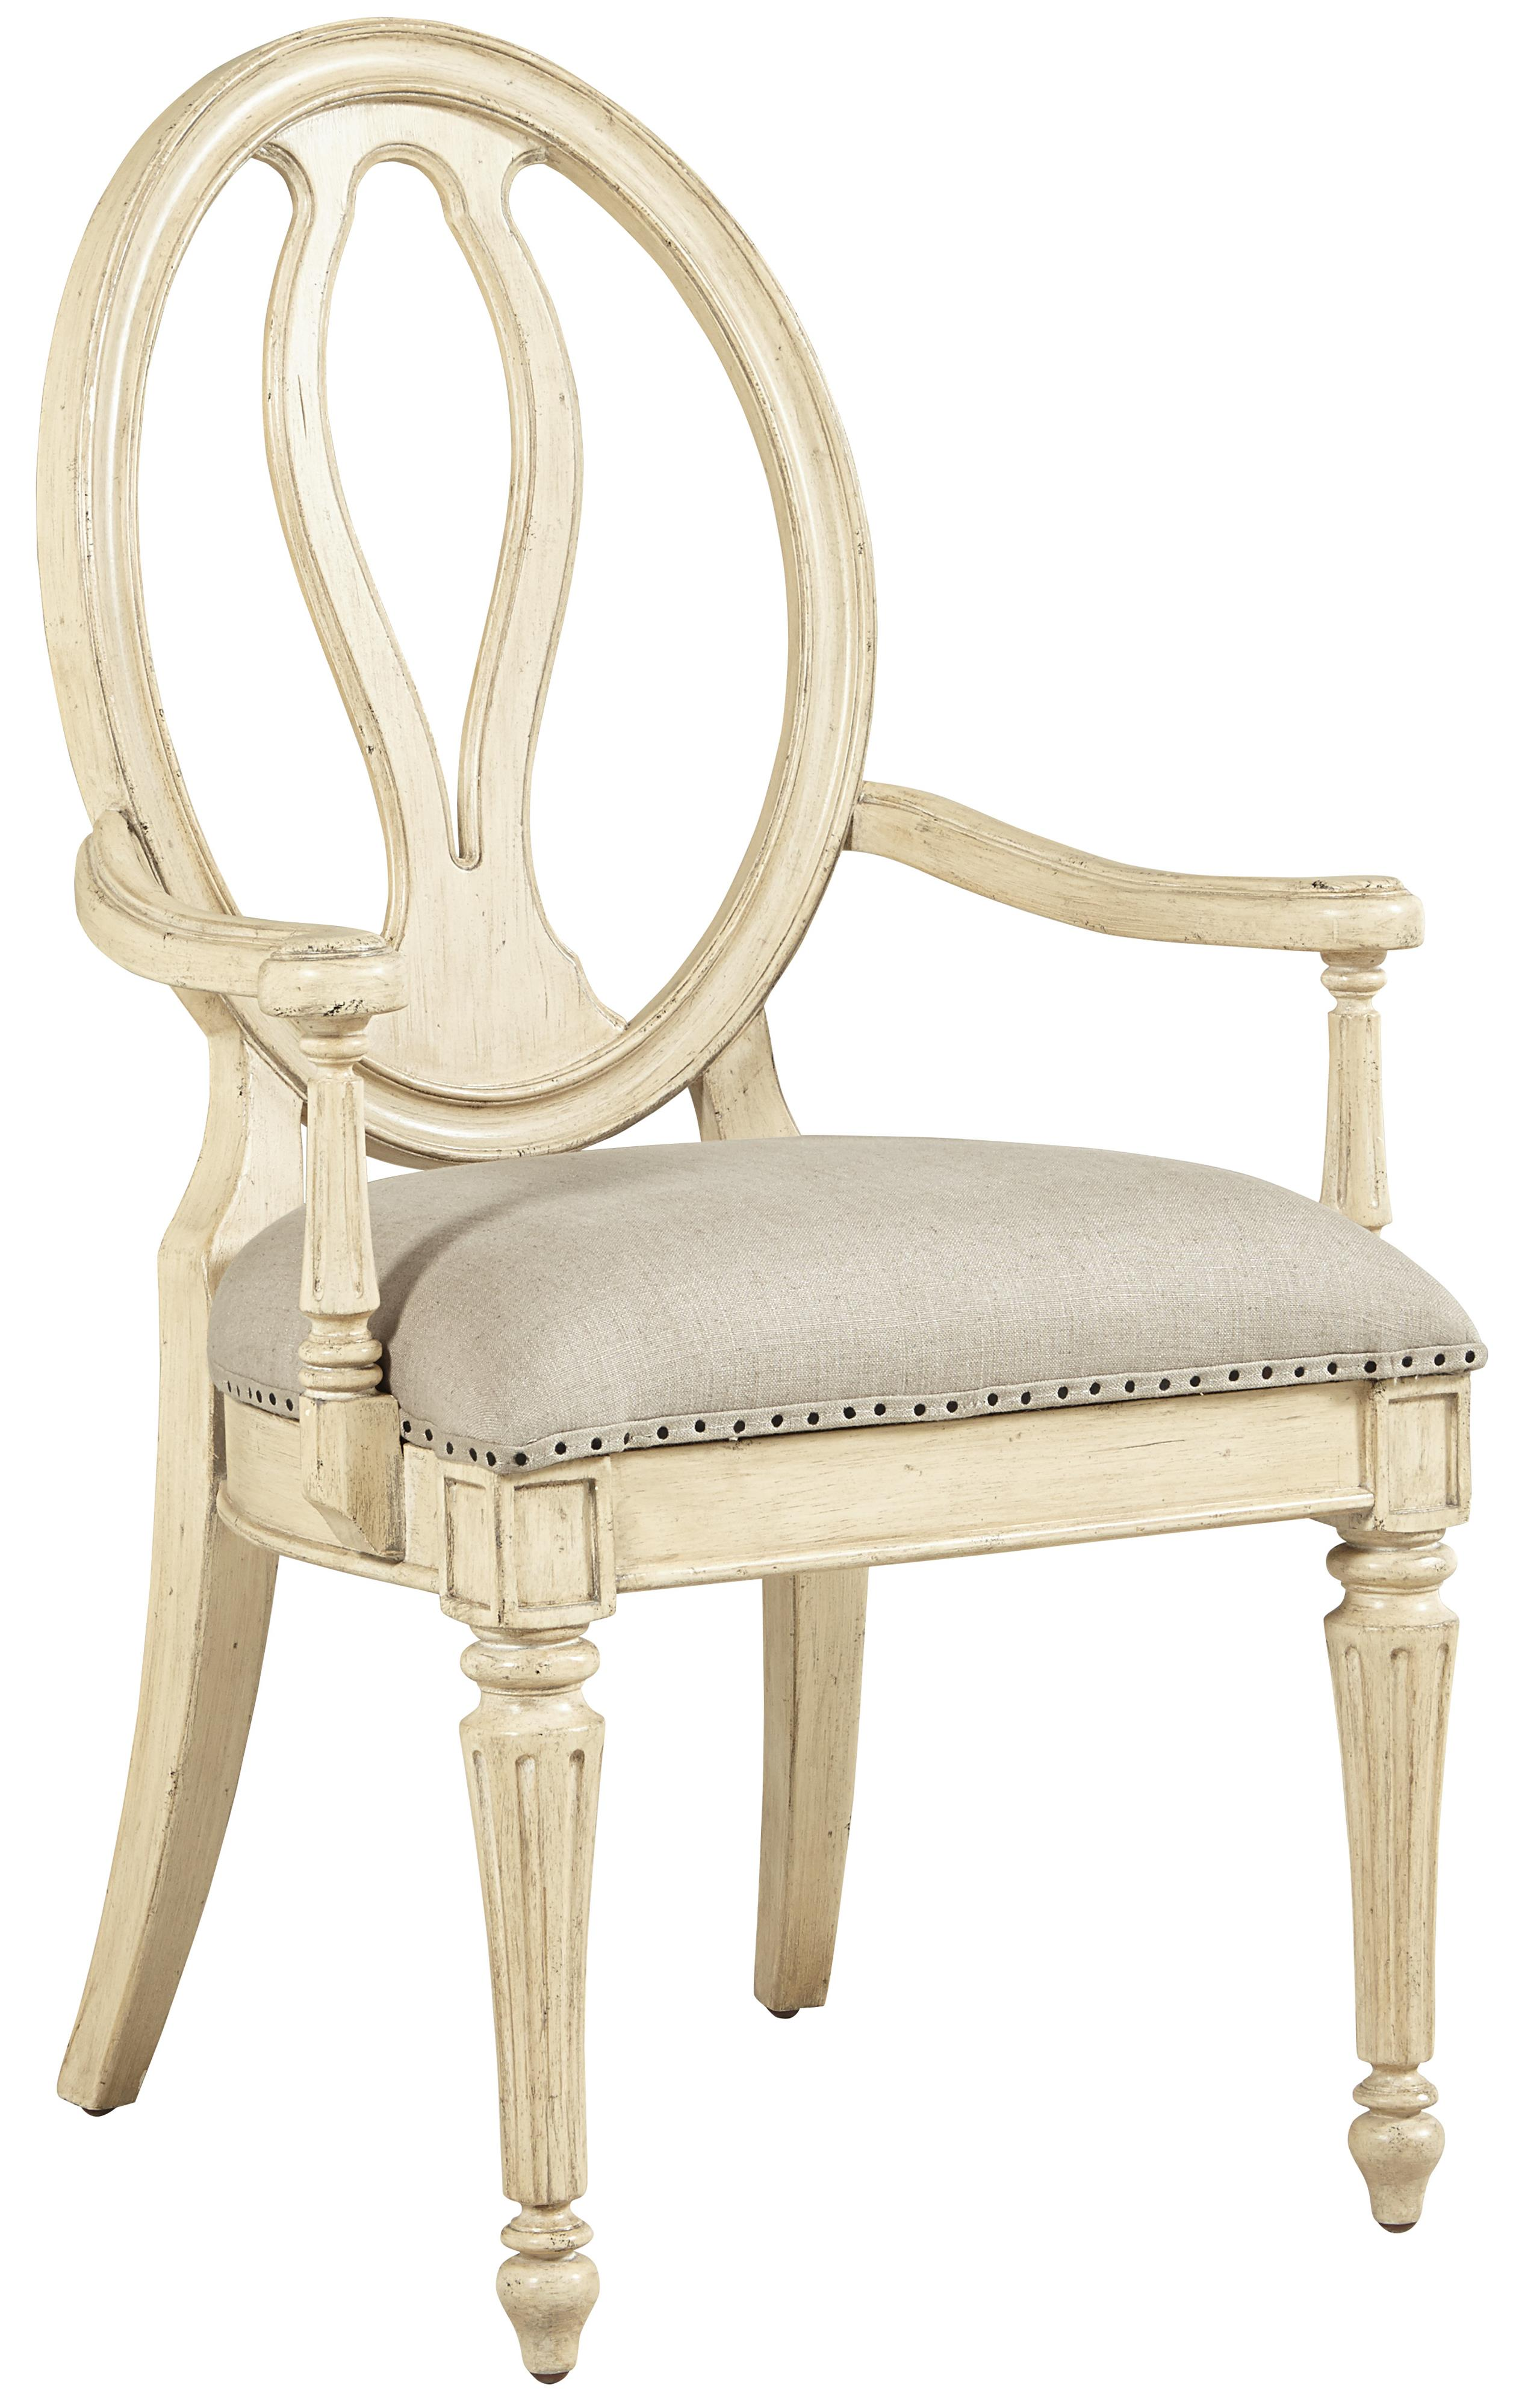 Stanley Furniture European Cottage Arm Chair - Item Number: 007-21-70